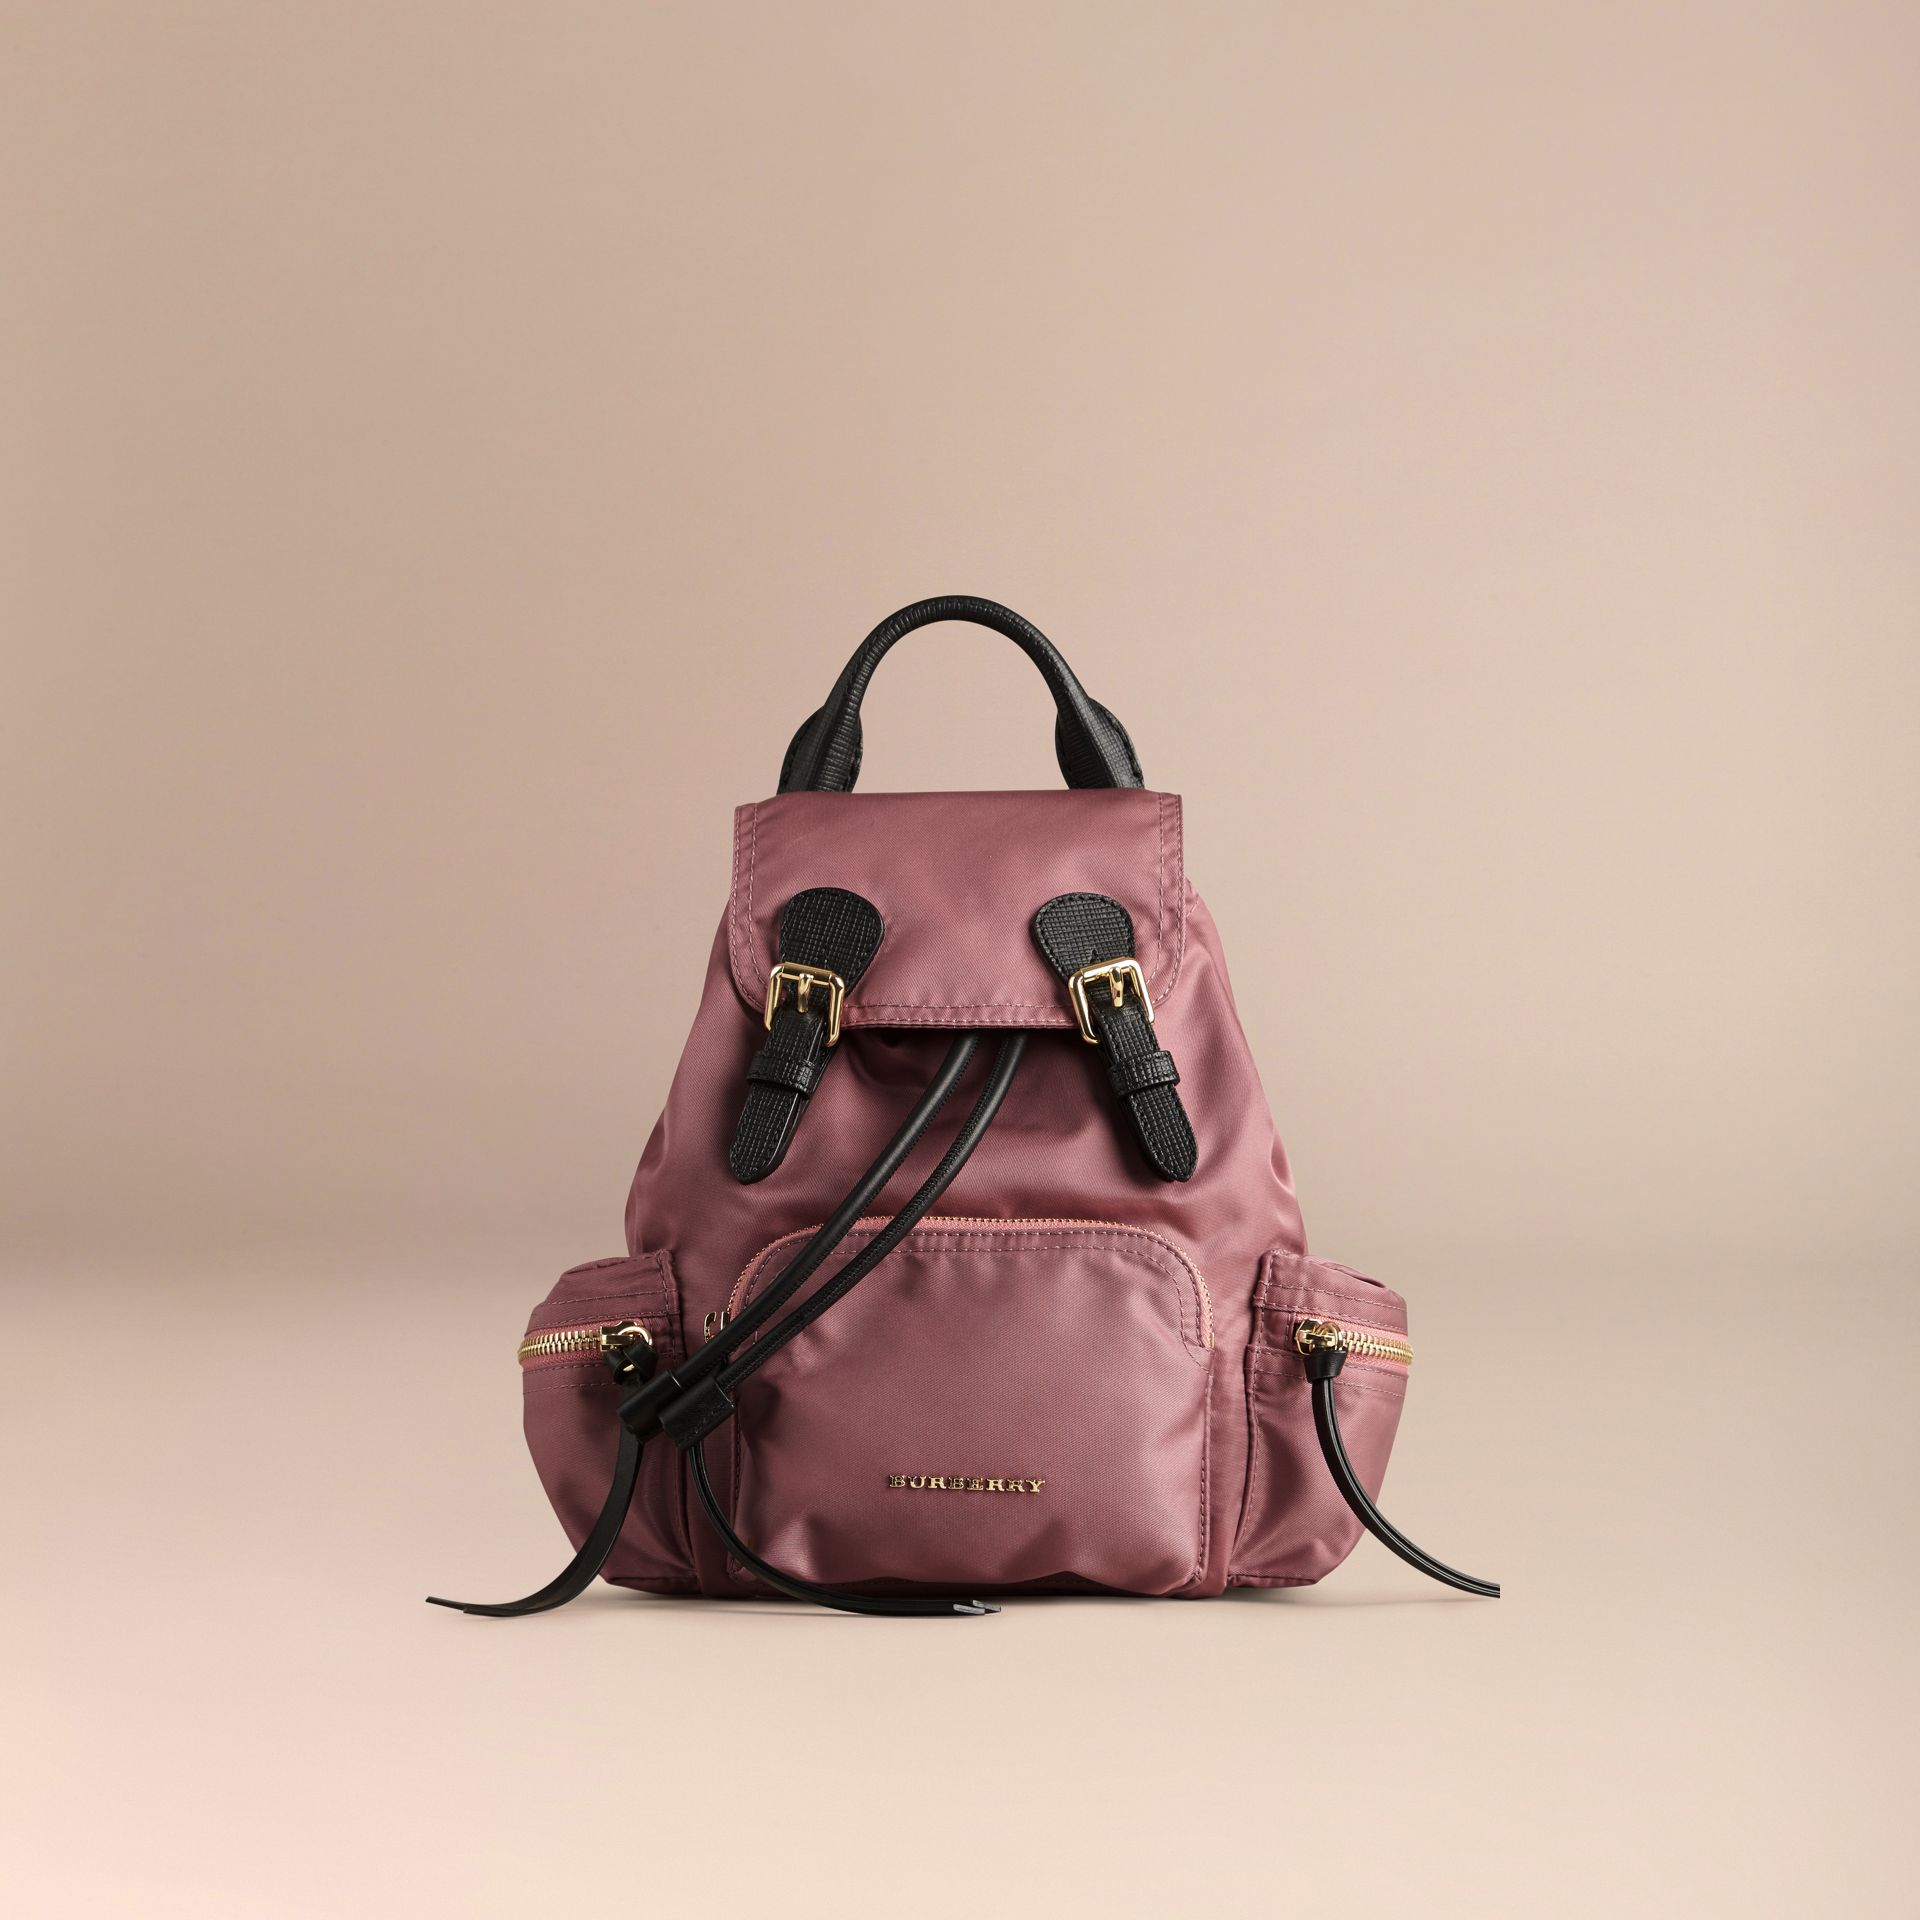 Rose mauve Petit sac The Rucksack en nylon technique et cuir Rose Mauve - photo de la galerie 7